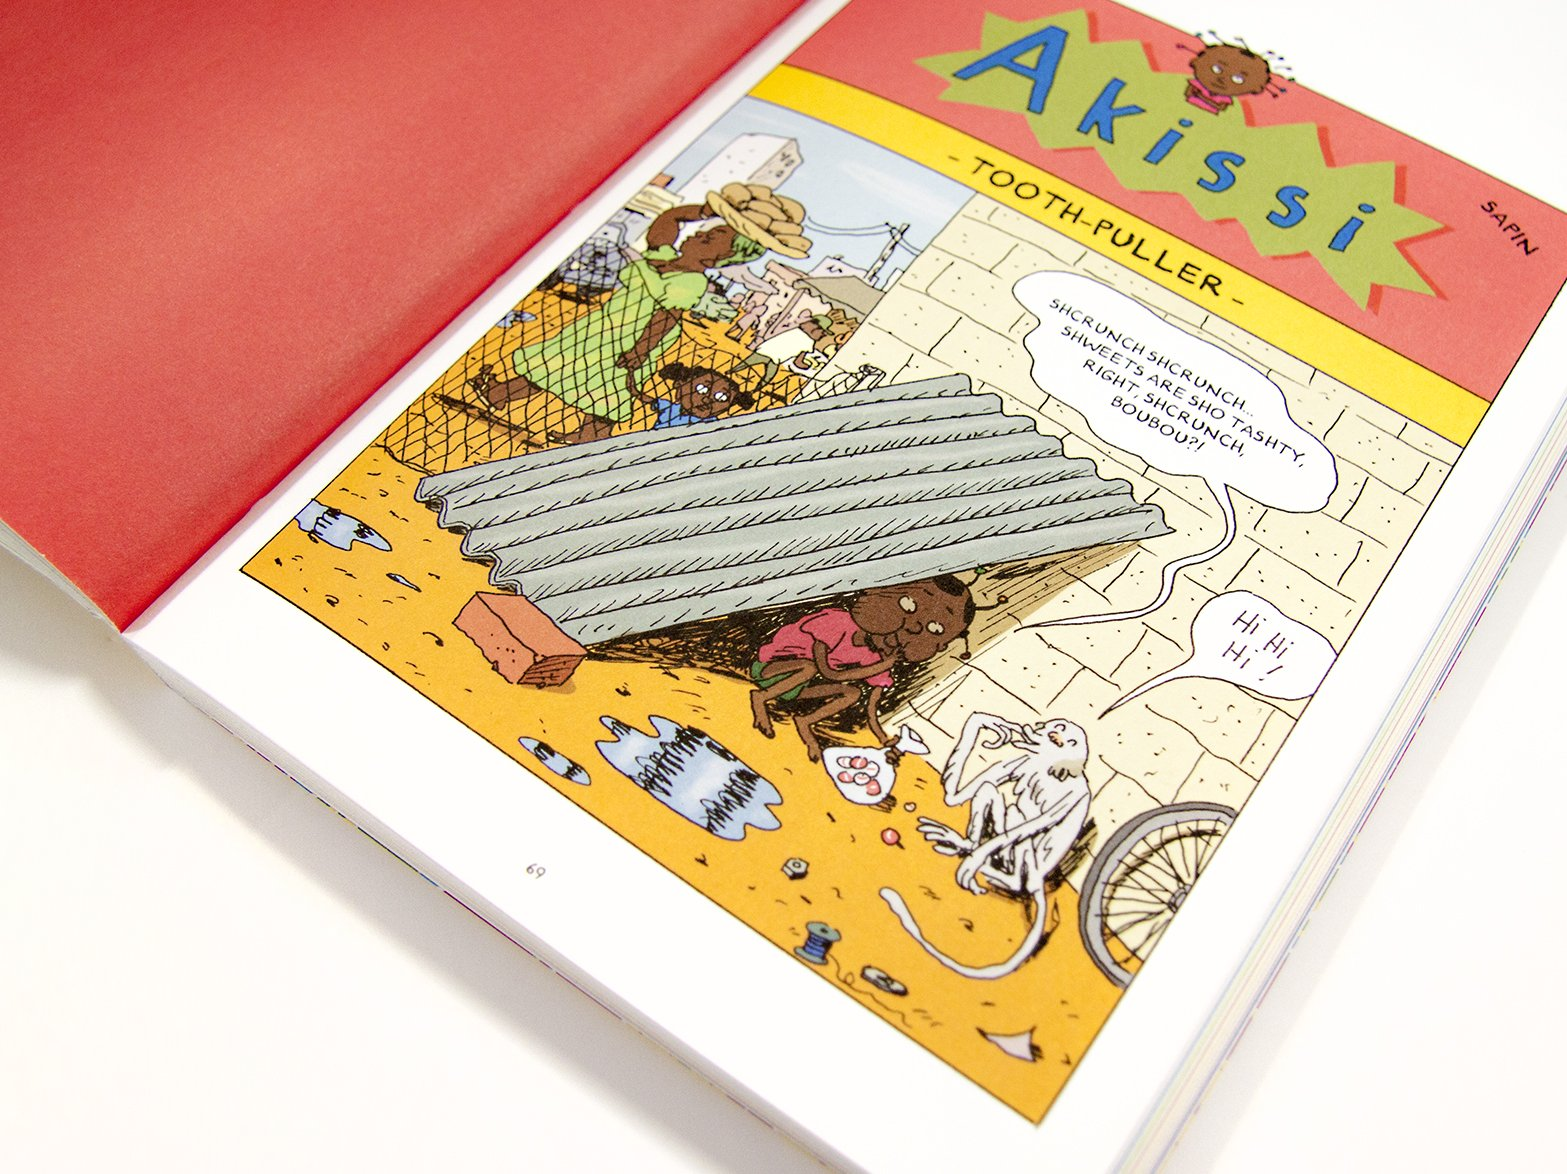 Akissi: Tales of Mischief [Graphic Novel] by Flying Eye Books (Image #12)